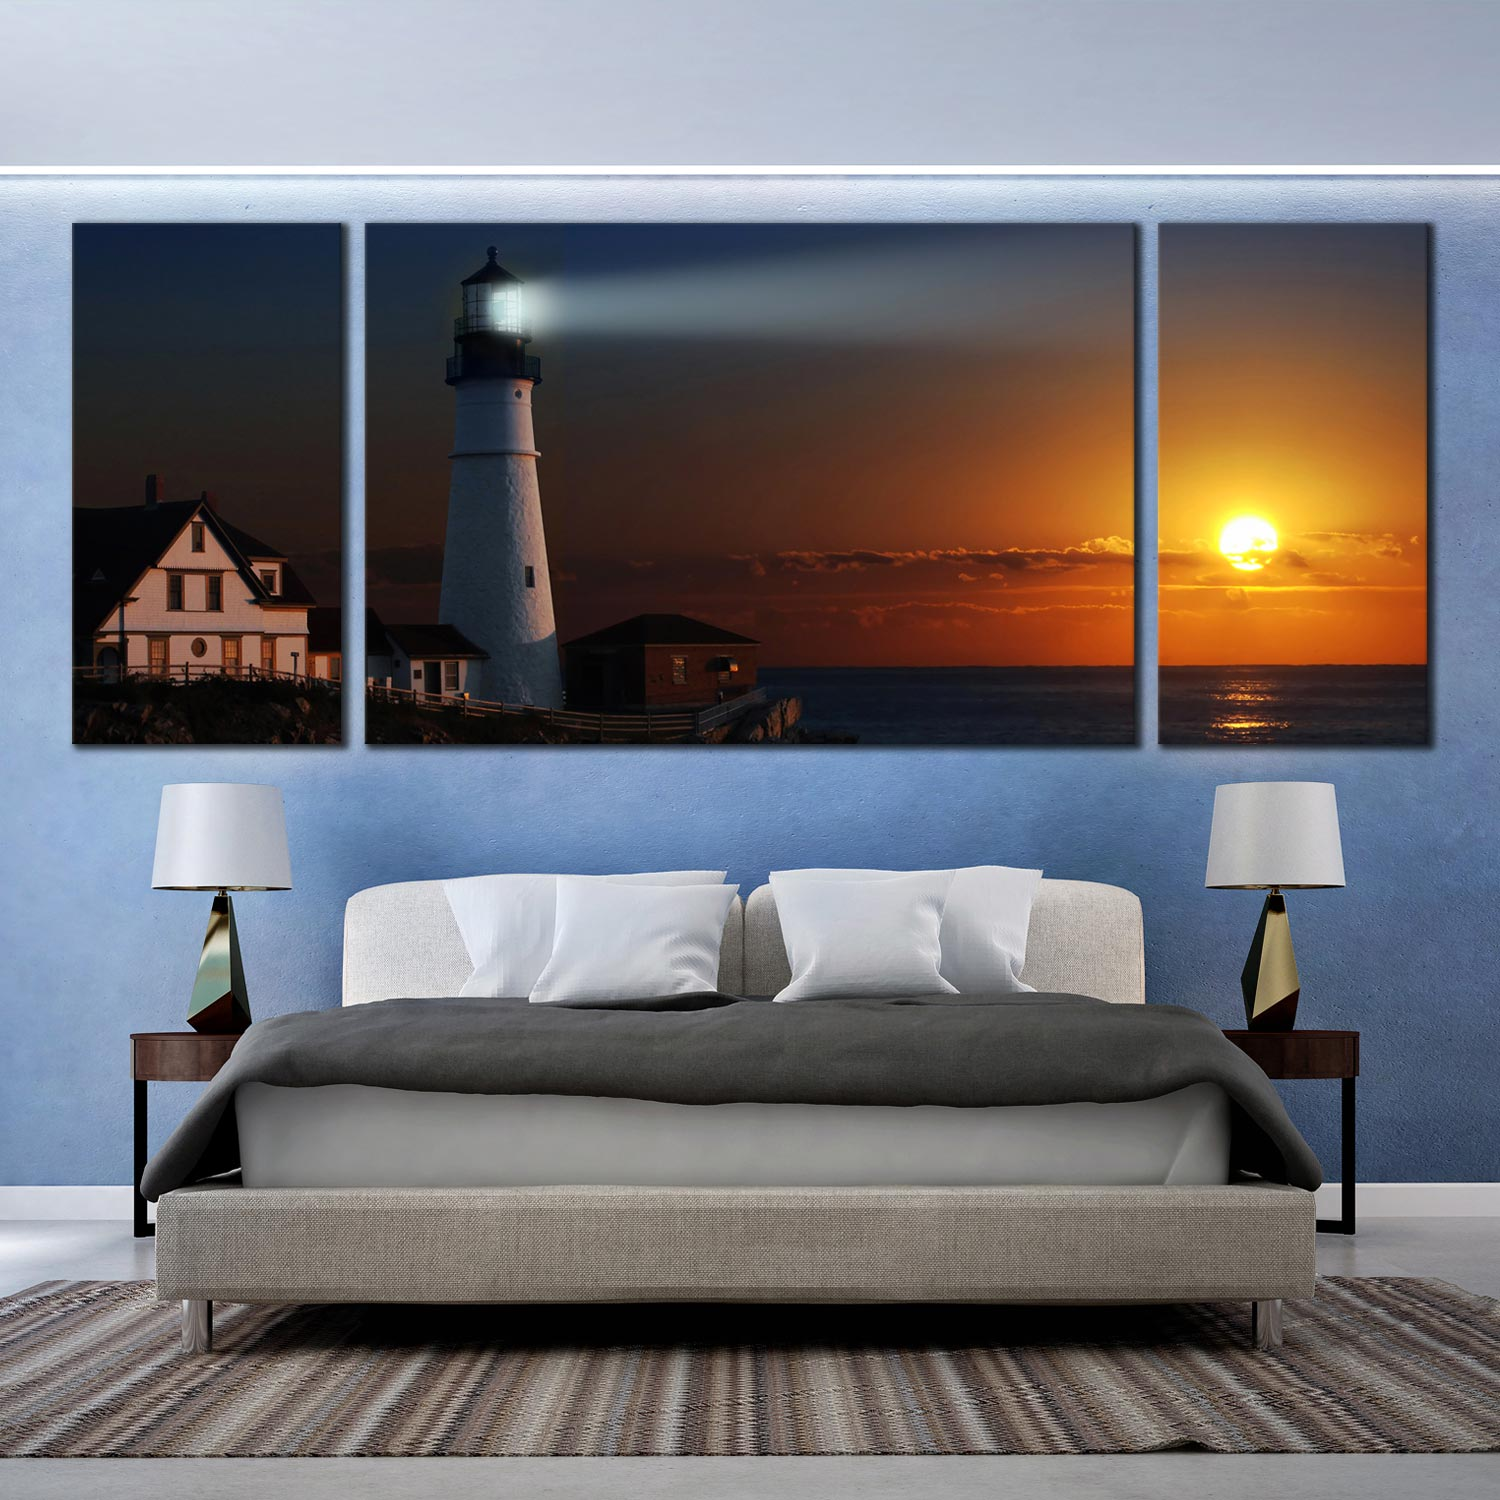 Portland City Canvas Wall Art, Lighthouse Cliff Houses Orange Sunset Canvas  Set, White Bright Light 3 Piece Canvas Print